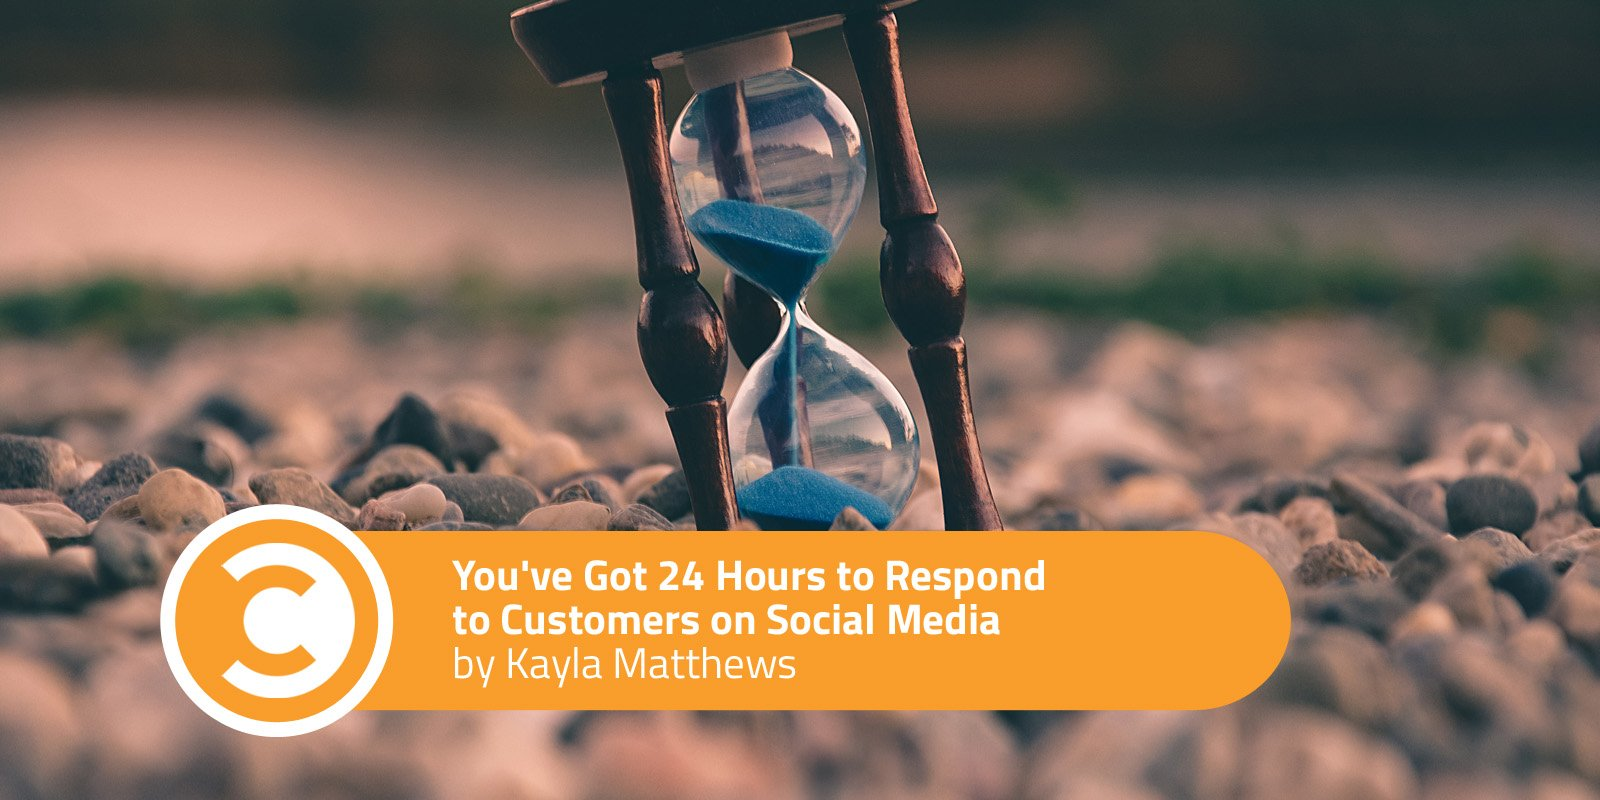 You've Got 24 Hours to Respond to Customers on Social Media